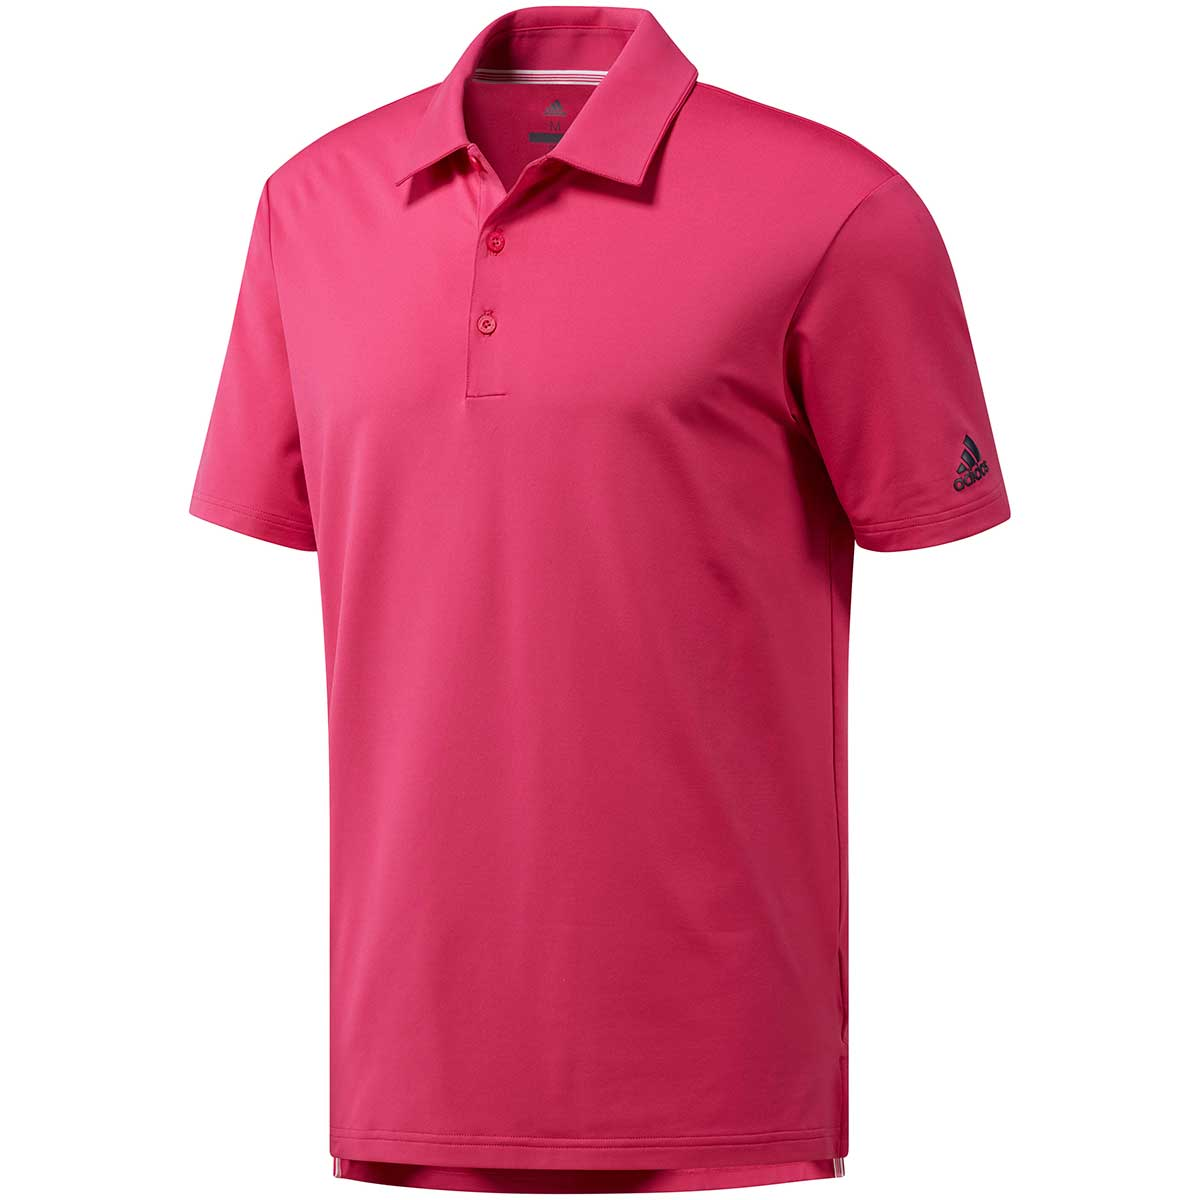 Adidas Men's Ultimate Solid Real Magenta Golf Polo